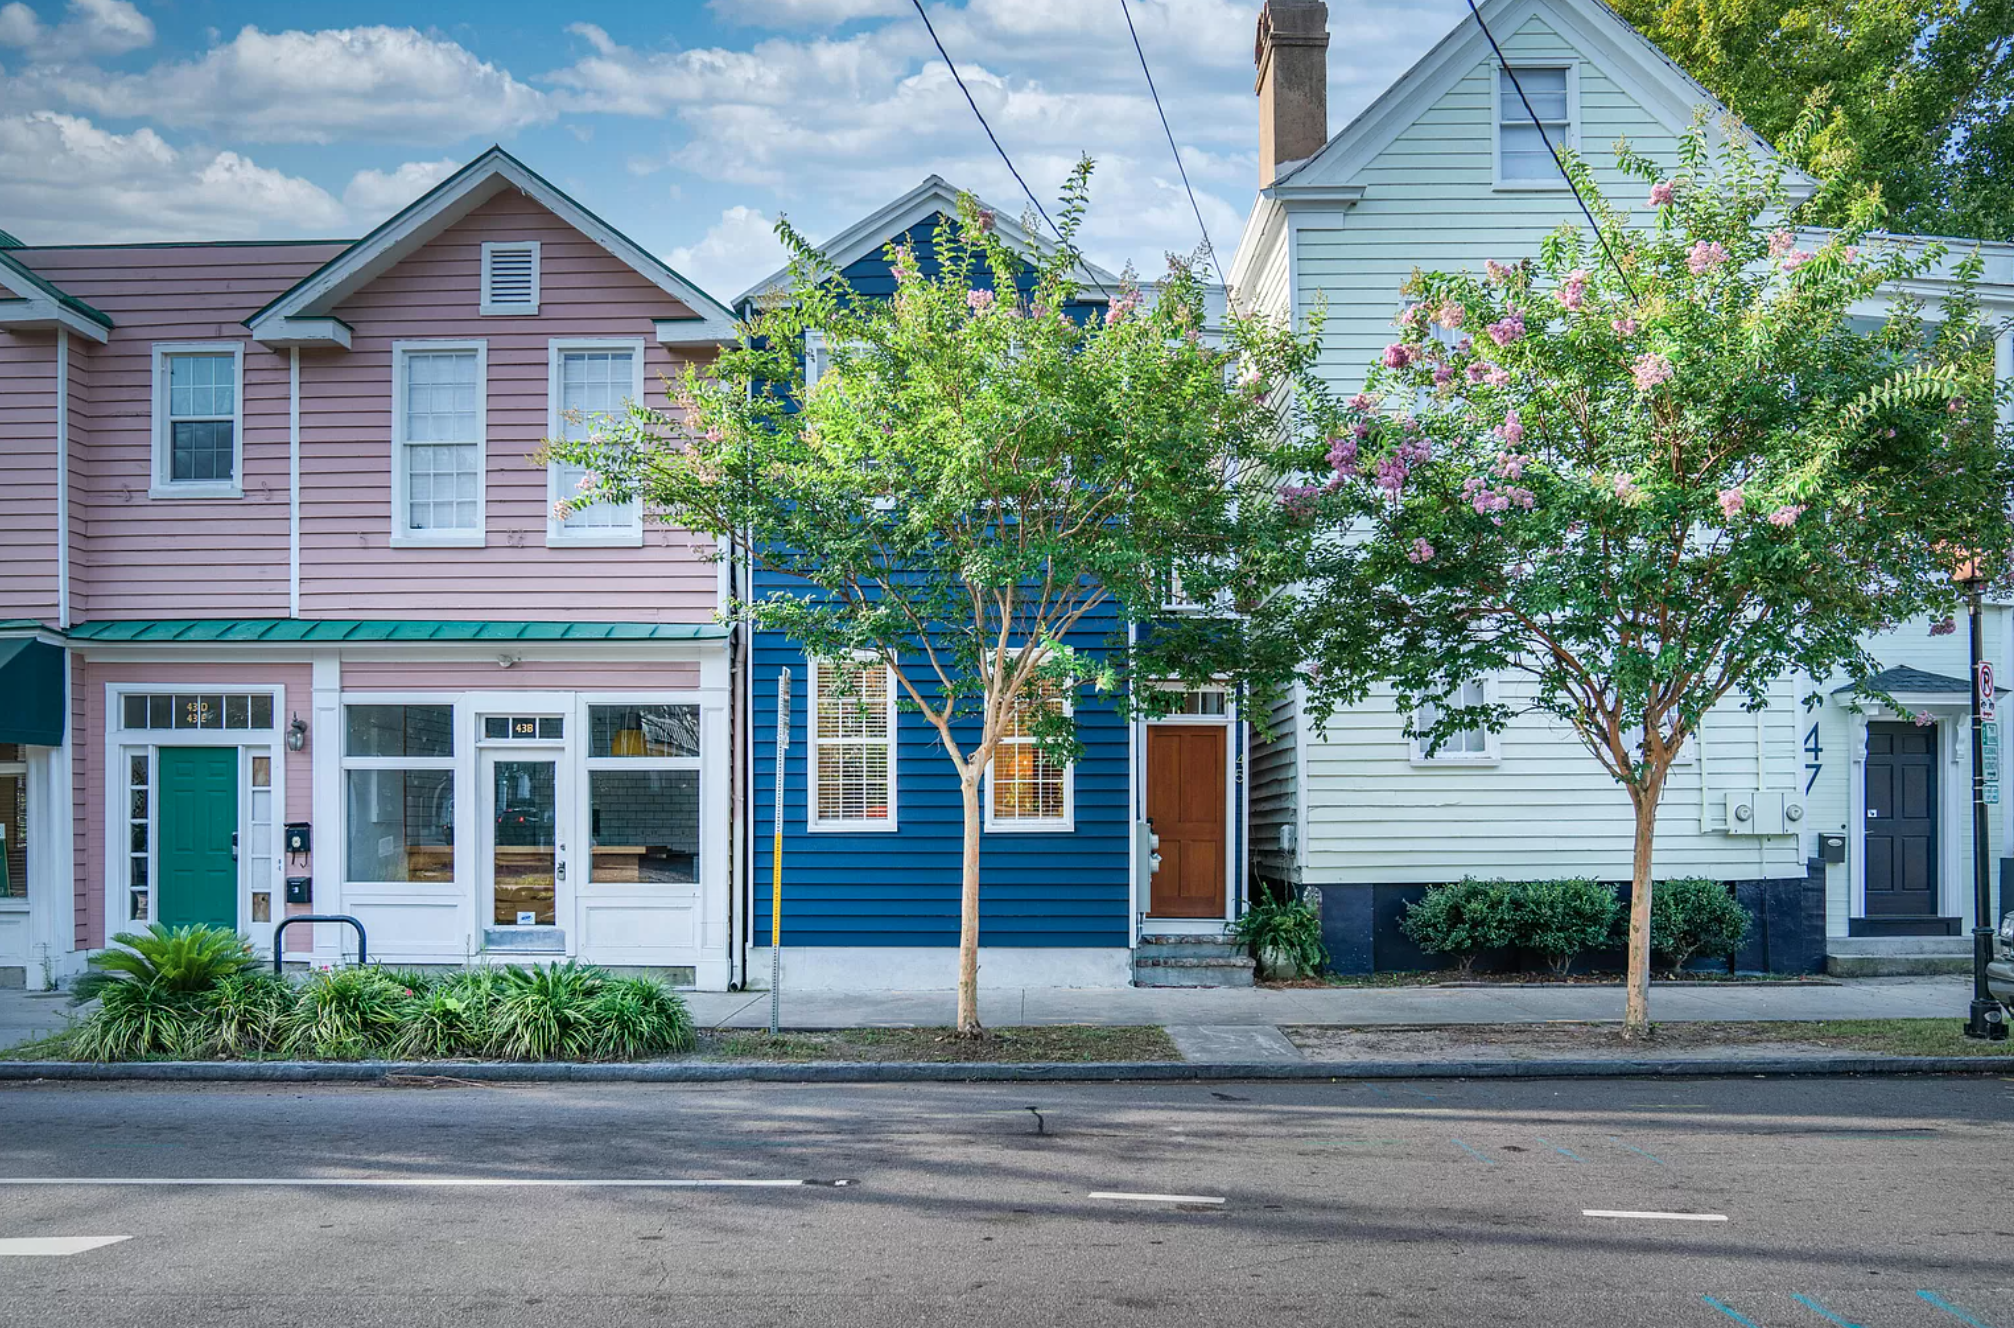 House flippers in Charleston should be greatly intrigued to check out this month's featured flip; a single-family fix-and-flip from one of our experienced borrowers who was able to turn their investment property into a beautiful fixer-upper project.